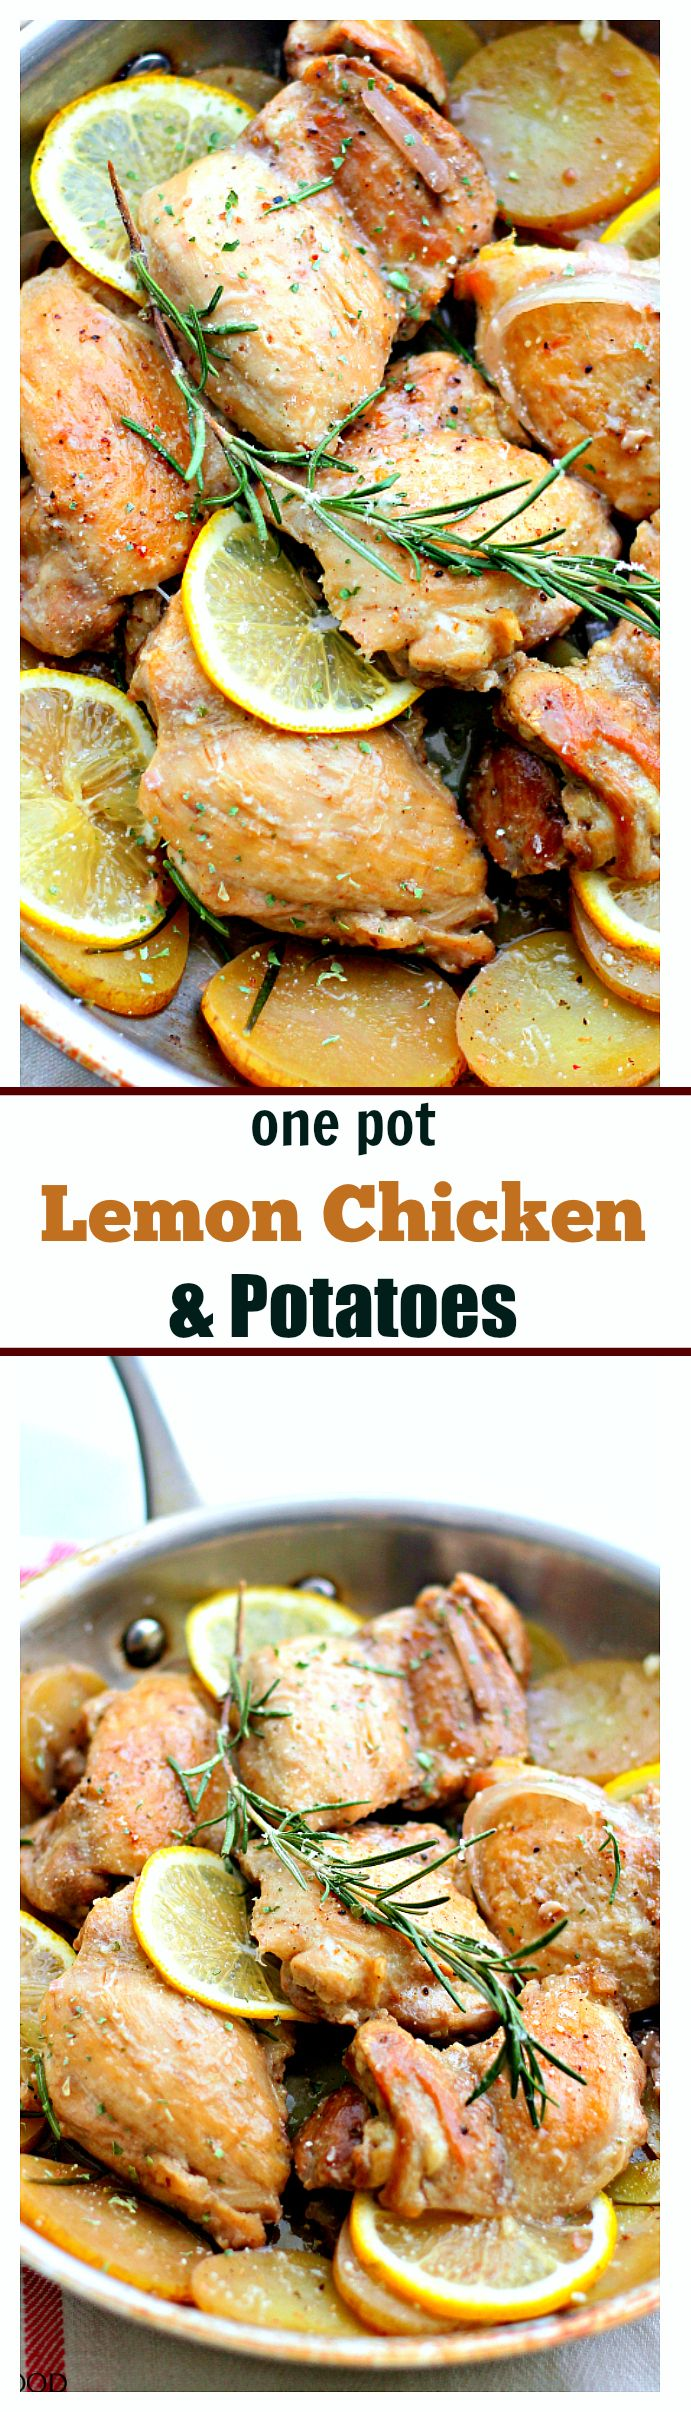 {Macedonia} One-Pot Lemon Chicken and Potatoes – This super easy, amazingly flavored dish with chicken and potatoes is a complete meal made all in one pot and in just 30-minutes!